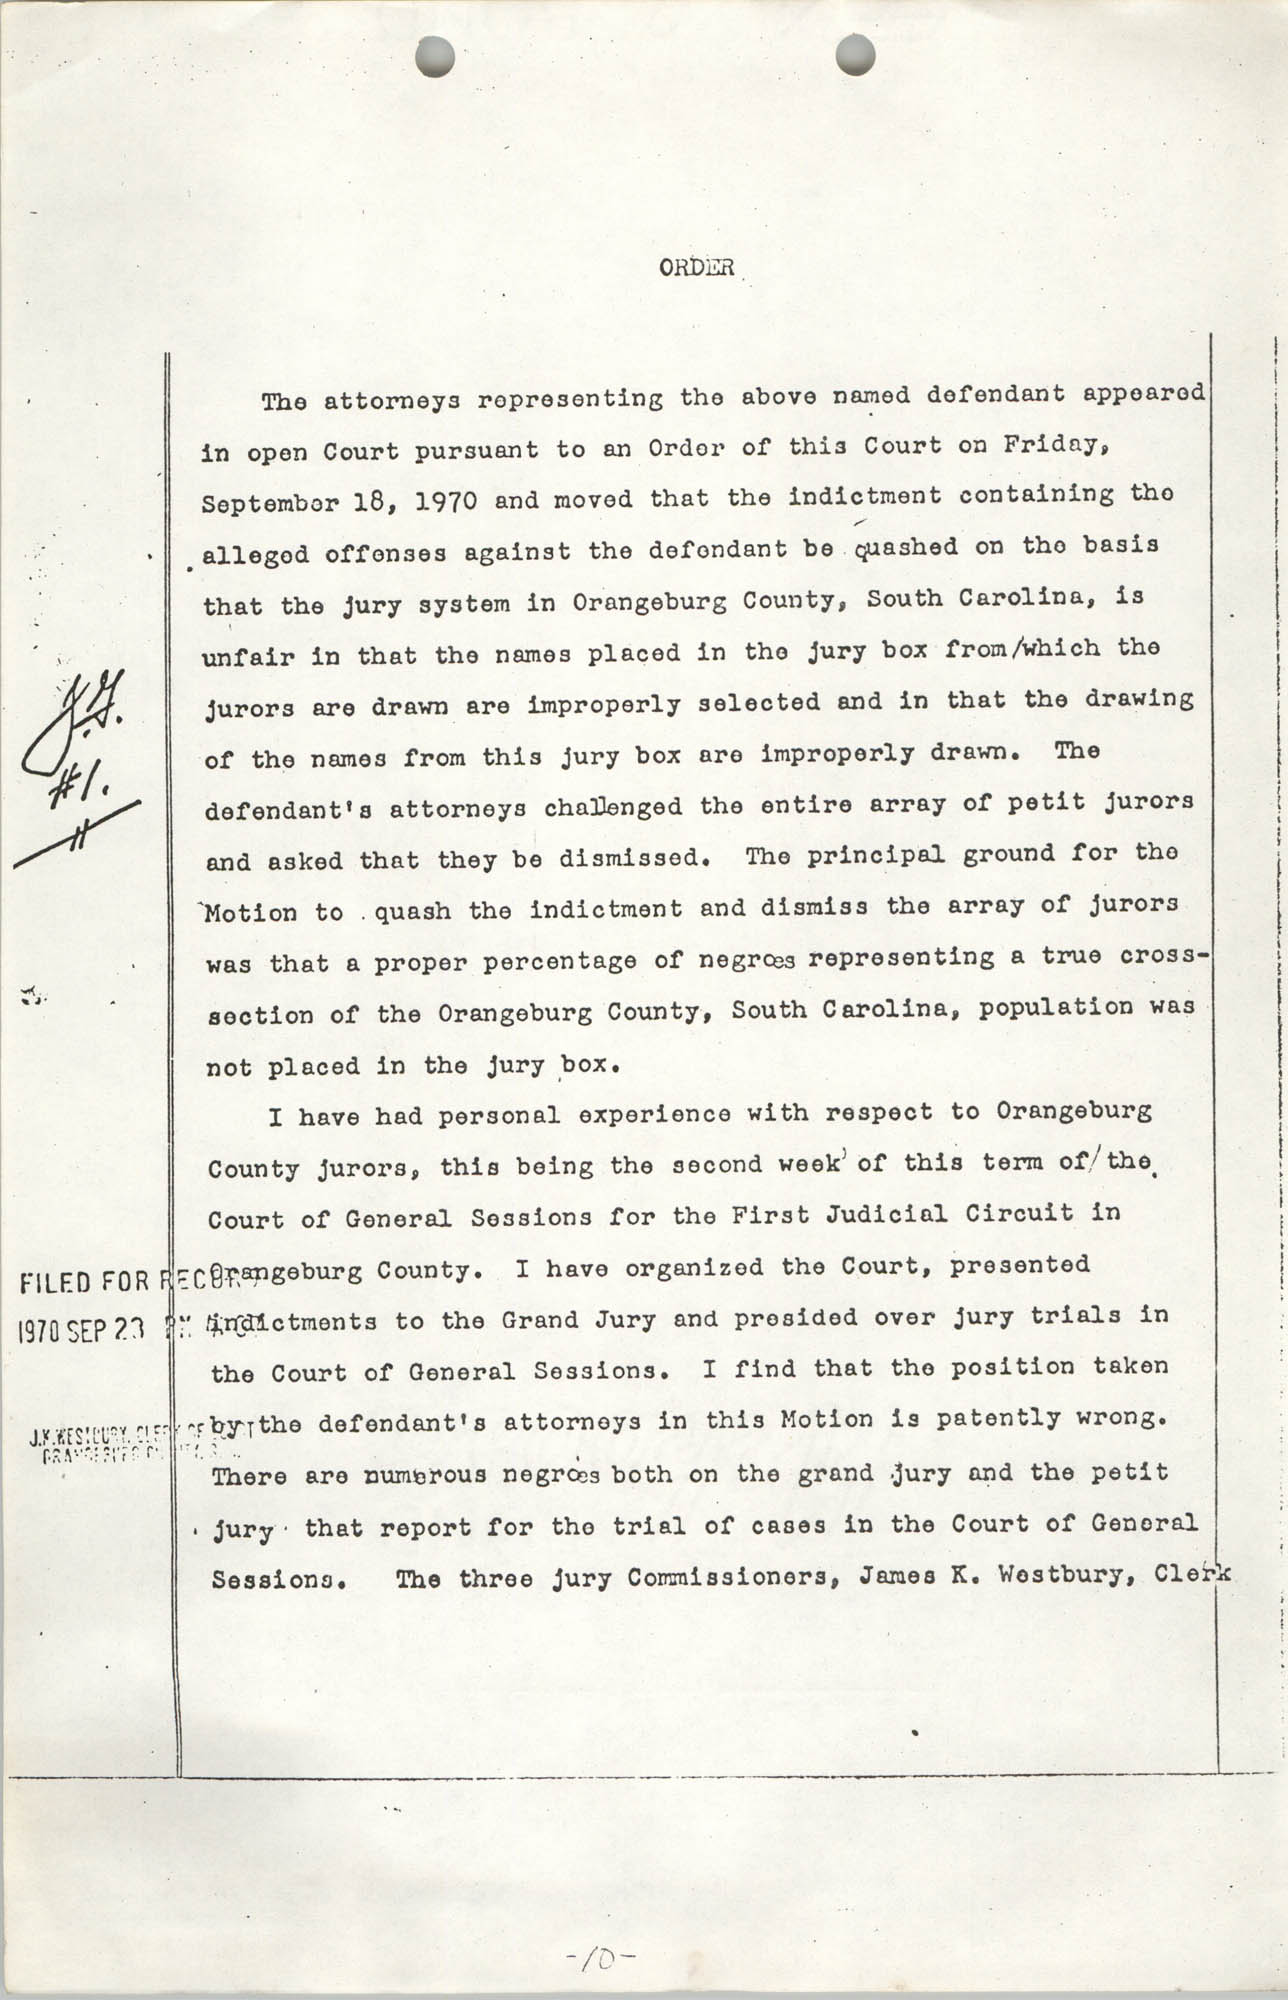 Appeal from Orangeburg County, The State against Cleveland Louis Sellers, Jr., Volume I, Page 10